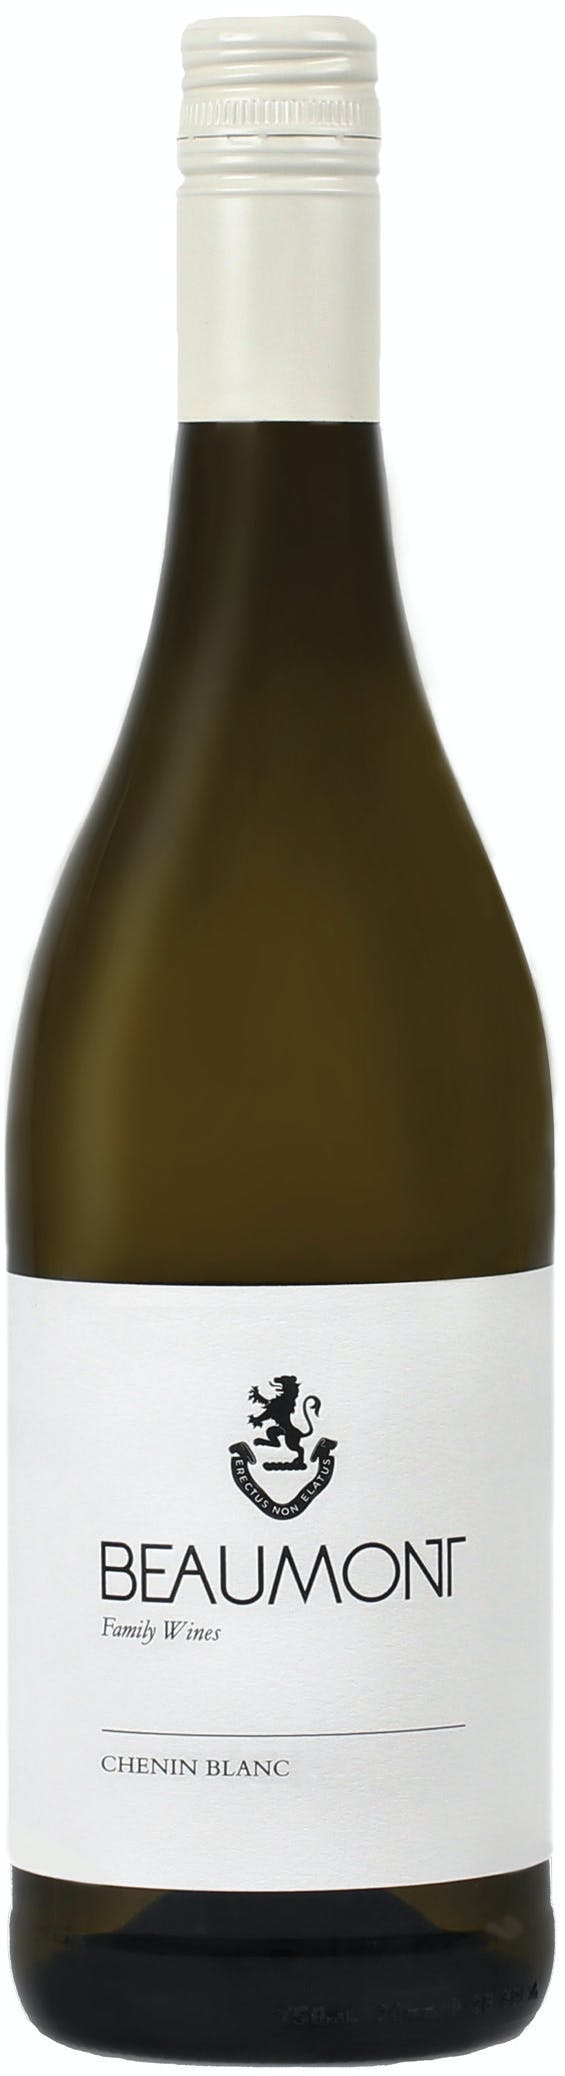 Beaumont Chenin Blanc 2020 (750ml)